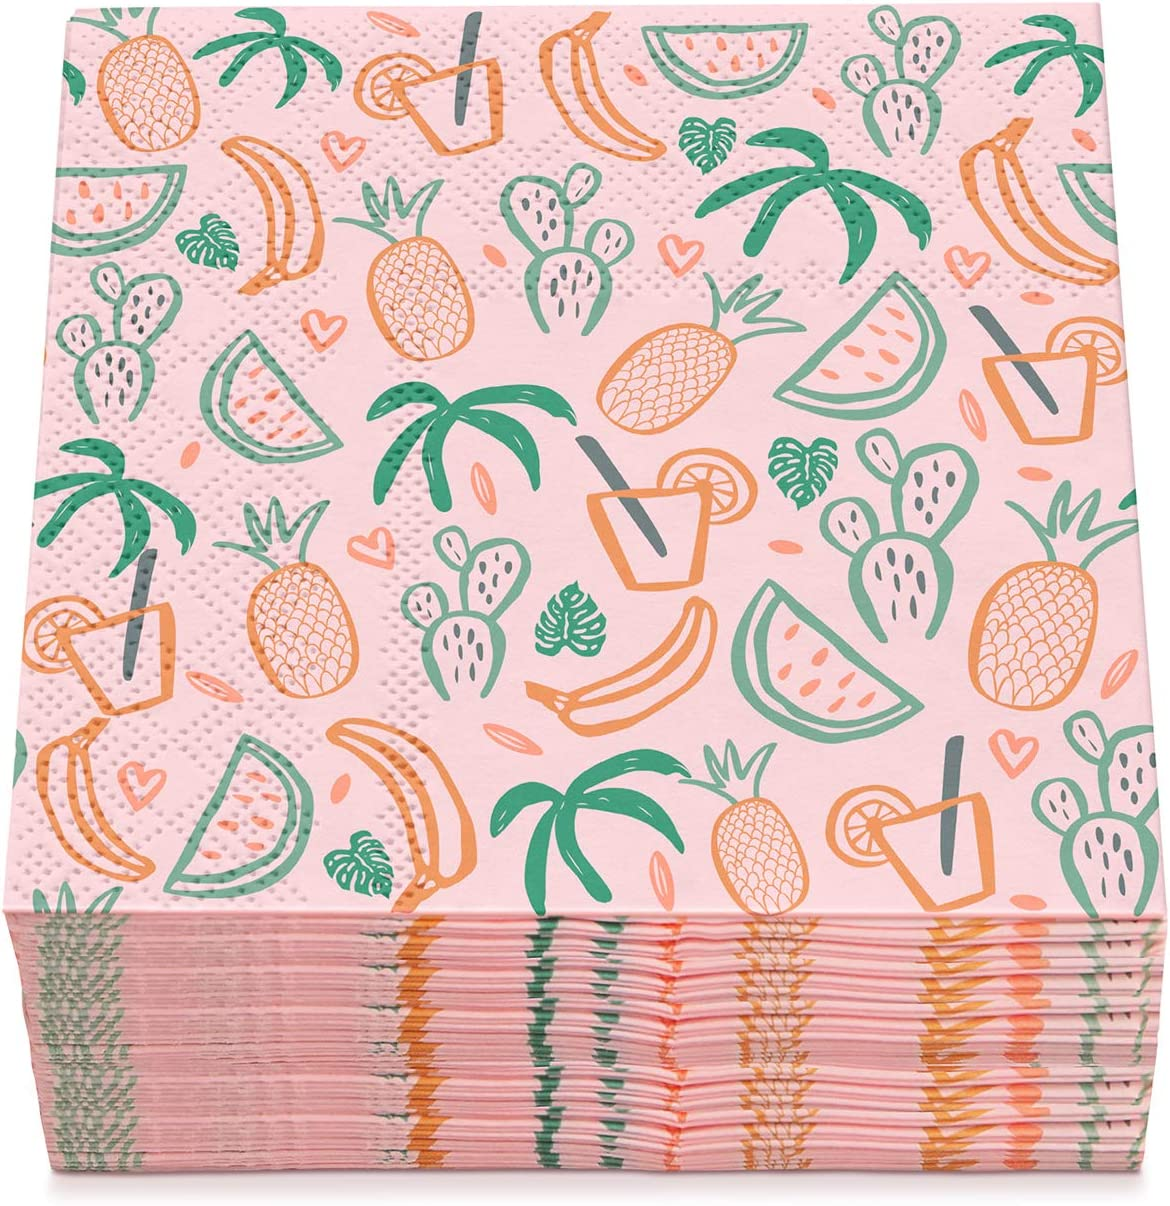 Sweetzer & Orange Cocktail Napkins Bulk Set of 60. White Napkins with Tropical Vibe. 5x5 Inch (Folded) Party Napkins. Soft 2-Ply Eco Disposable Paper Napkins. Decorative Beverage Napkins, Bar